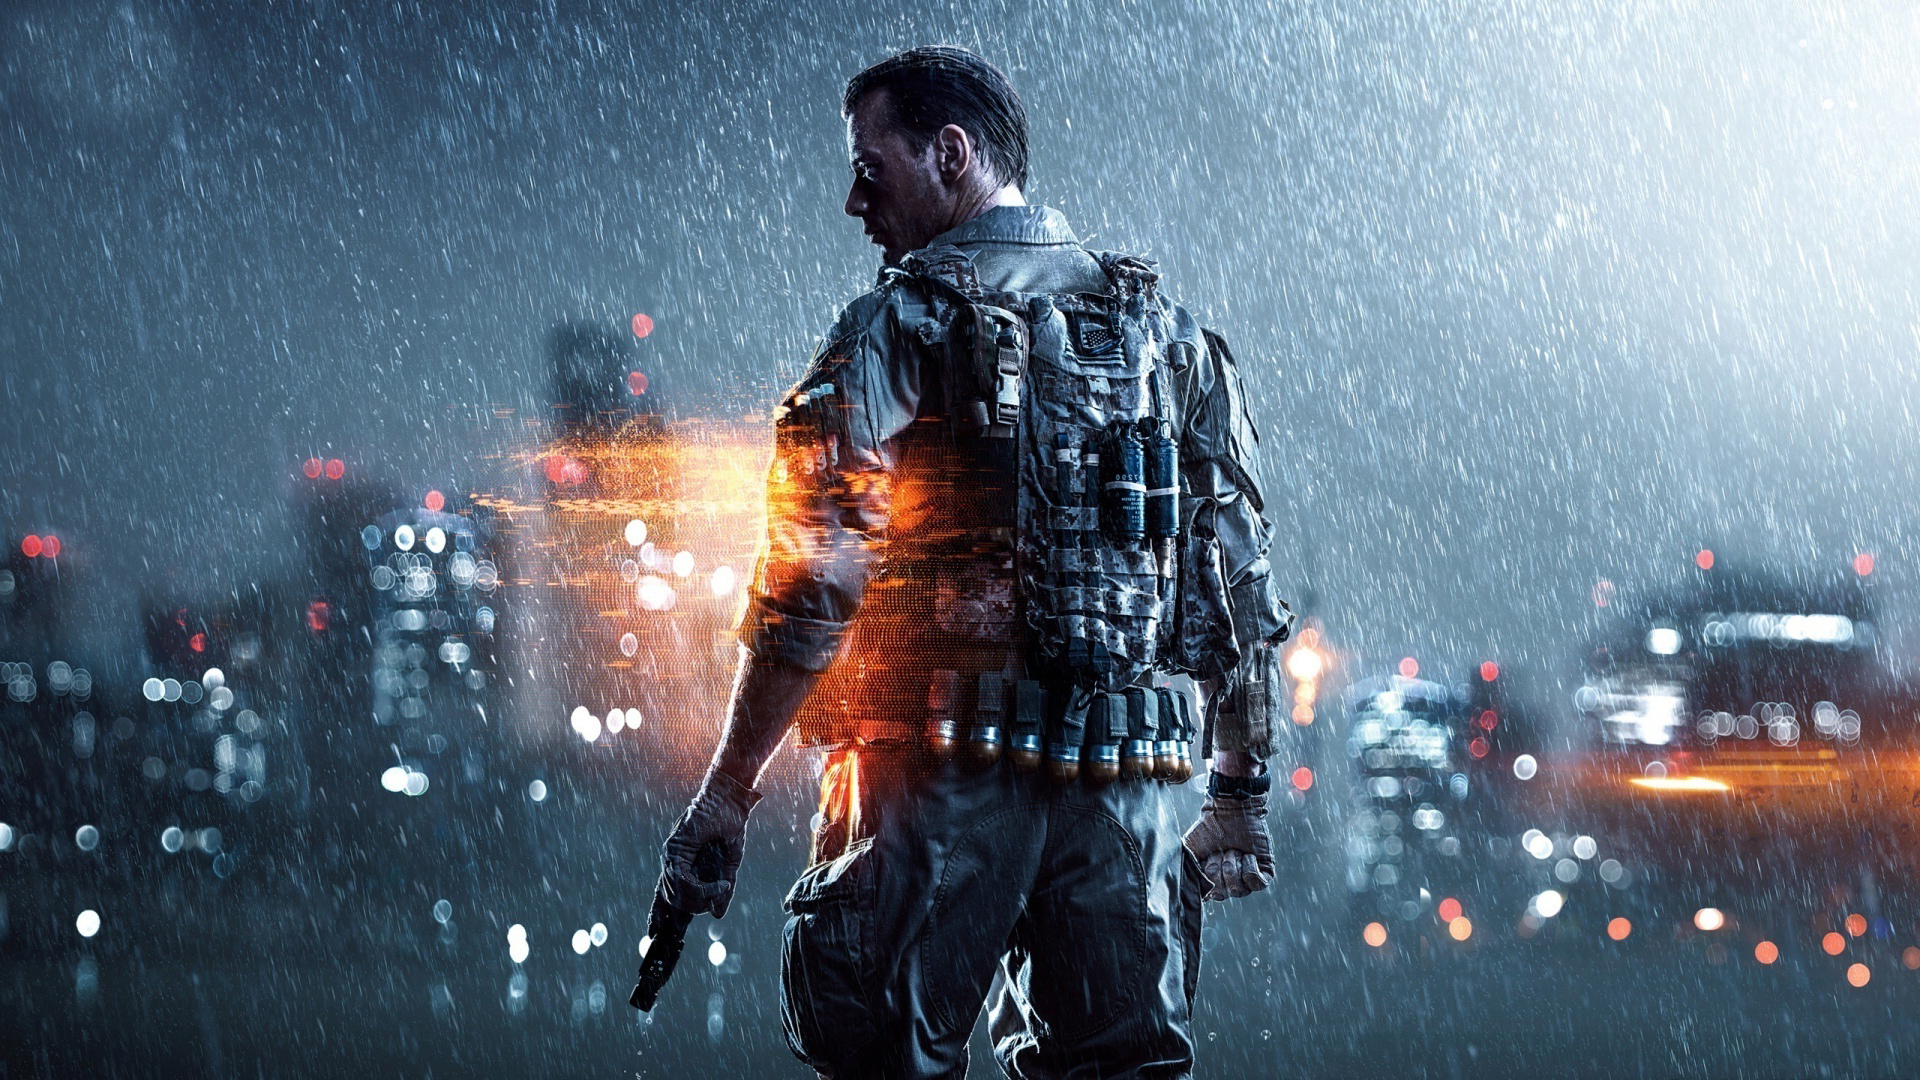 Action Game Hd Wallpaper Collection: Battlefield 4 Wallpapers, Pictures, Images